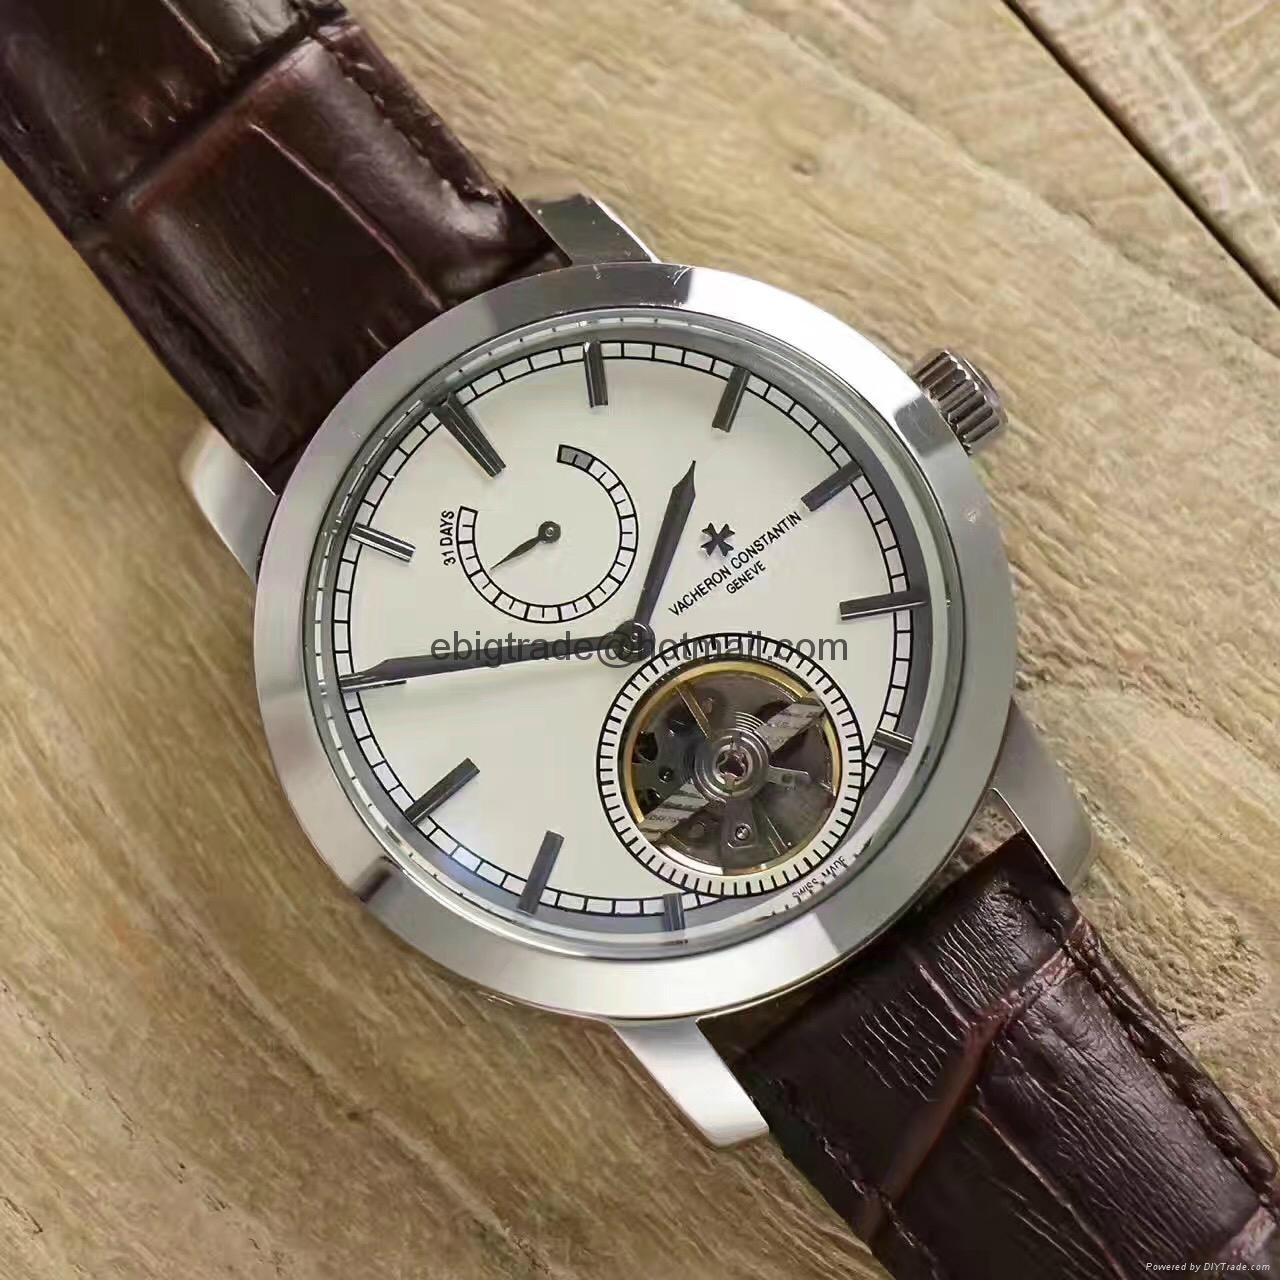 Vacheron Constantin Watch Price